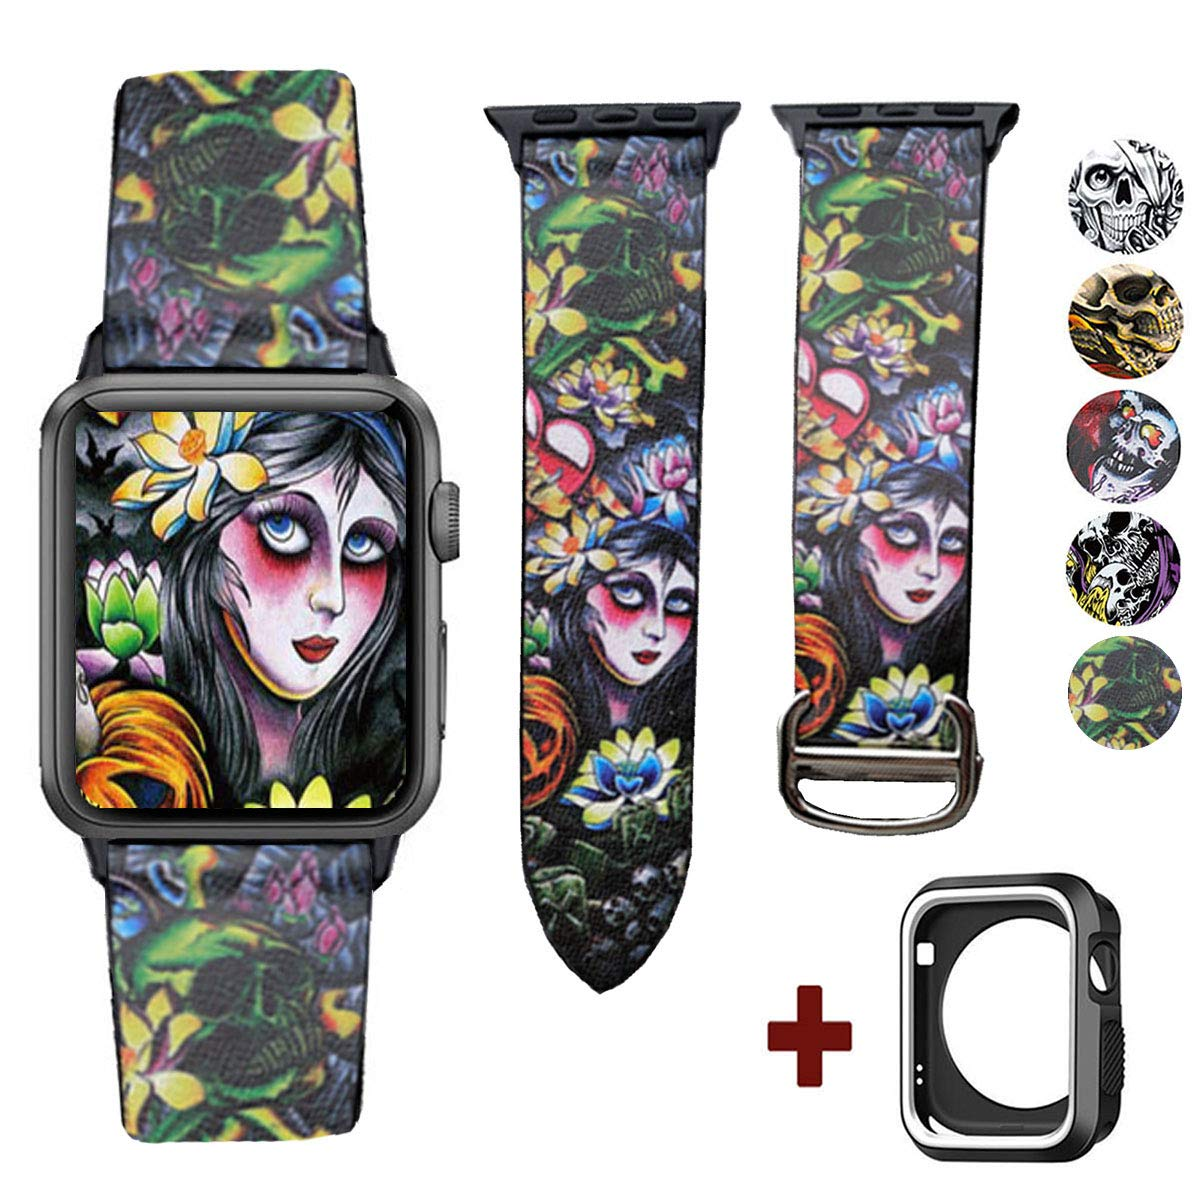 DELELE Compatible for Apple Watch Band 38mm 42mm, High Grade Creative Print Leather Replacement Strap with Unique Cartier Buckle for iWatch Apple Watch Series 3/2 / 1 Women Men (Skull-Forest, 38mm)